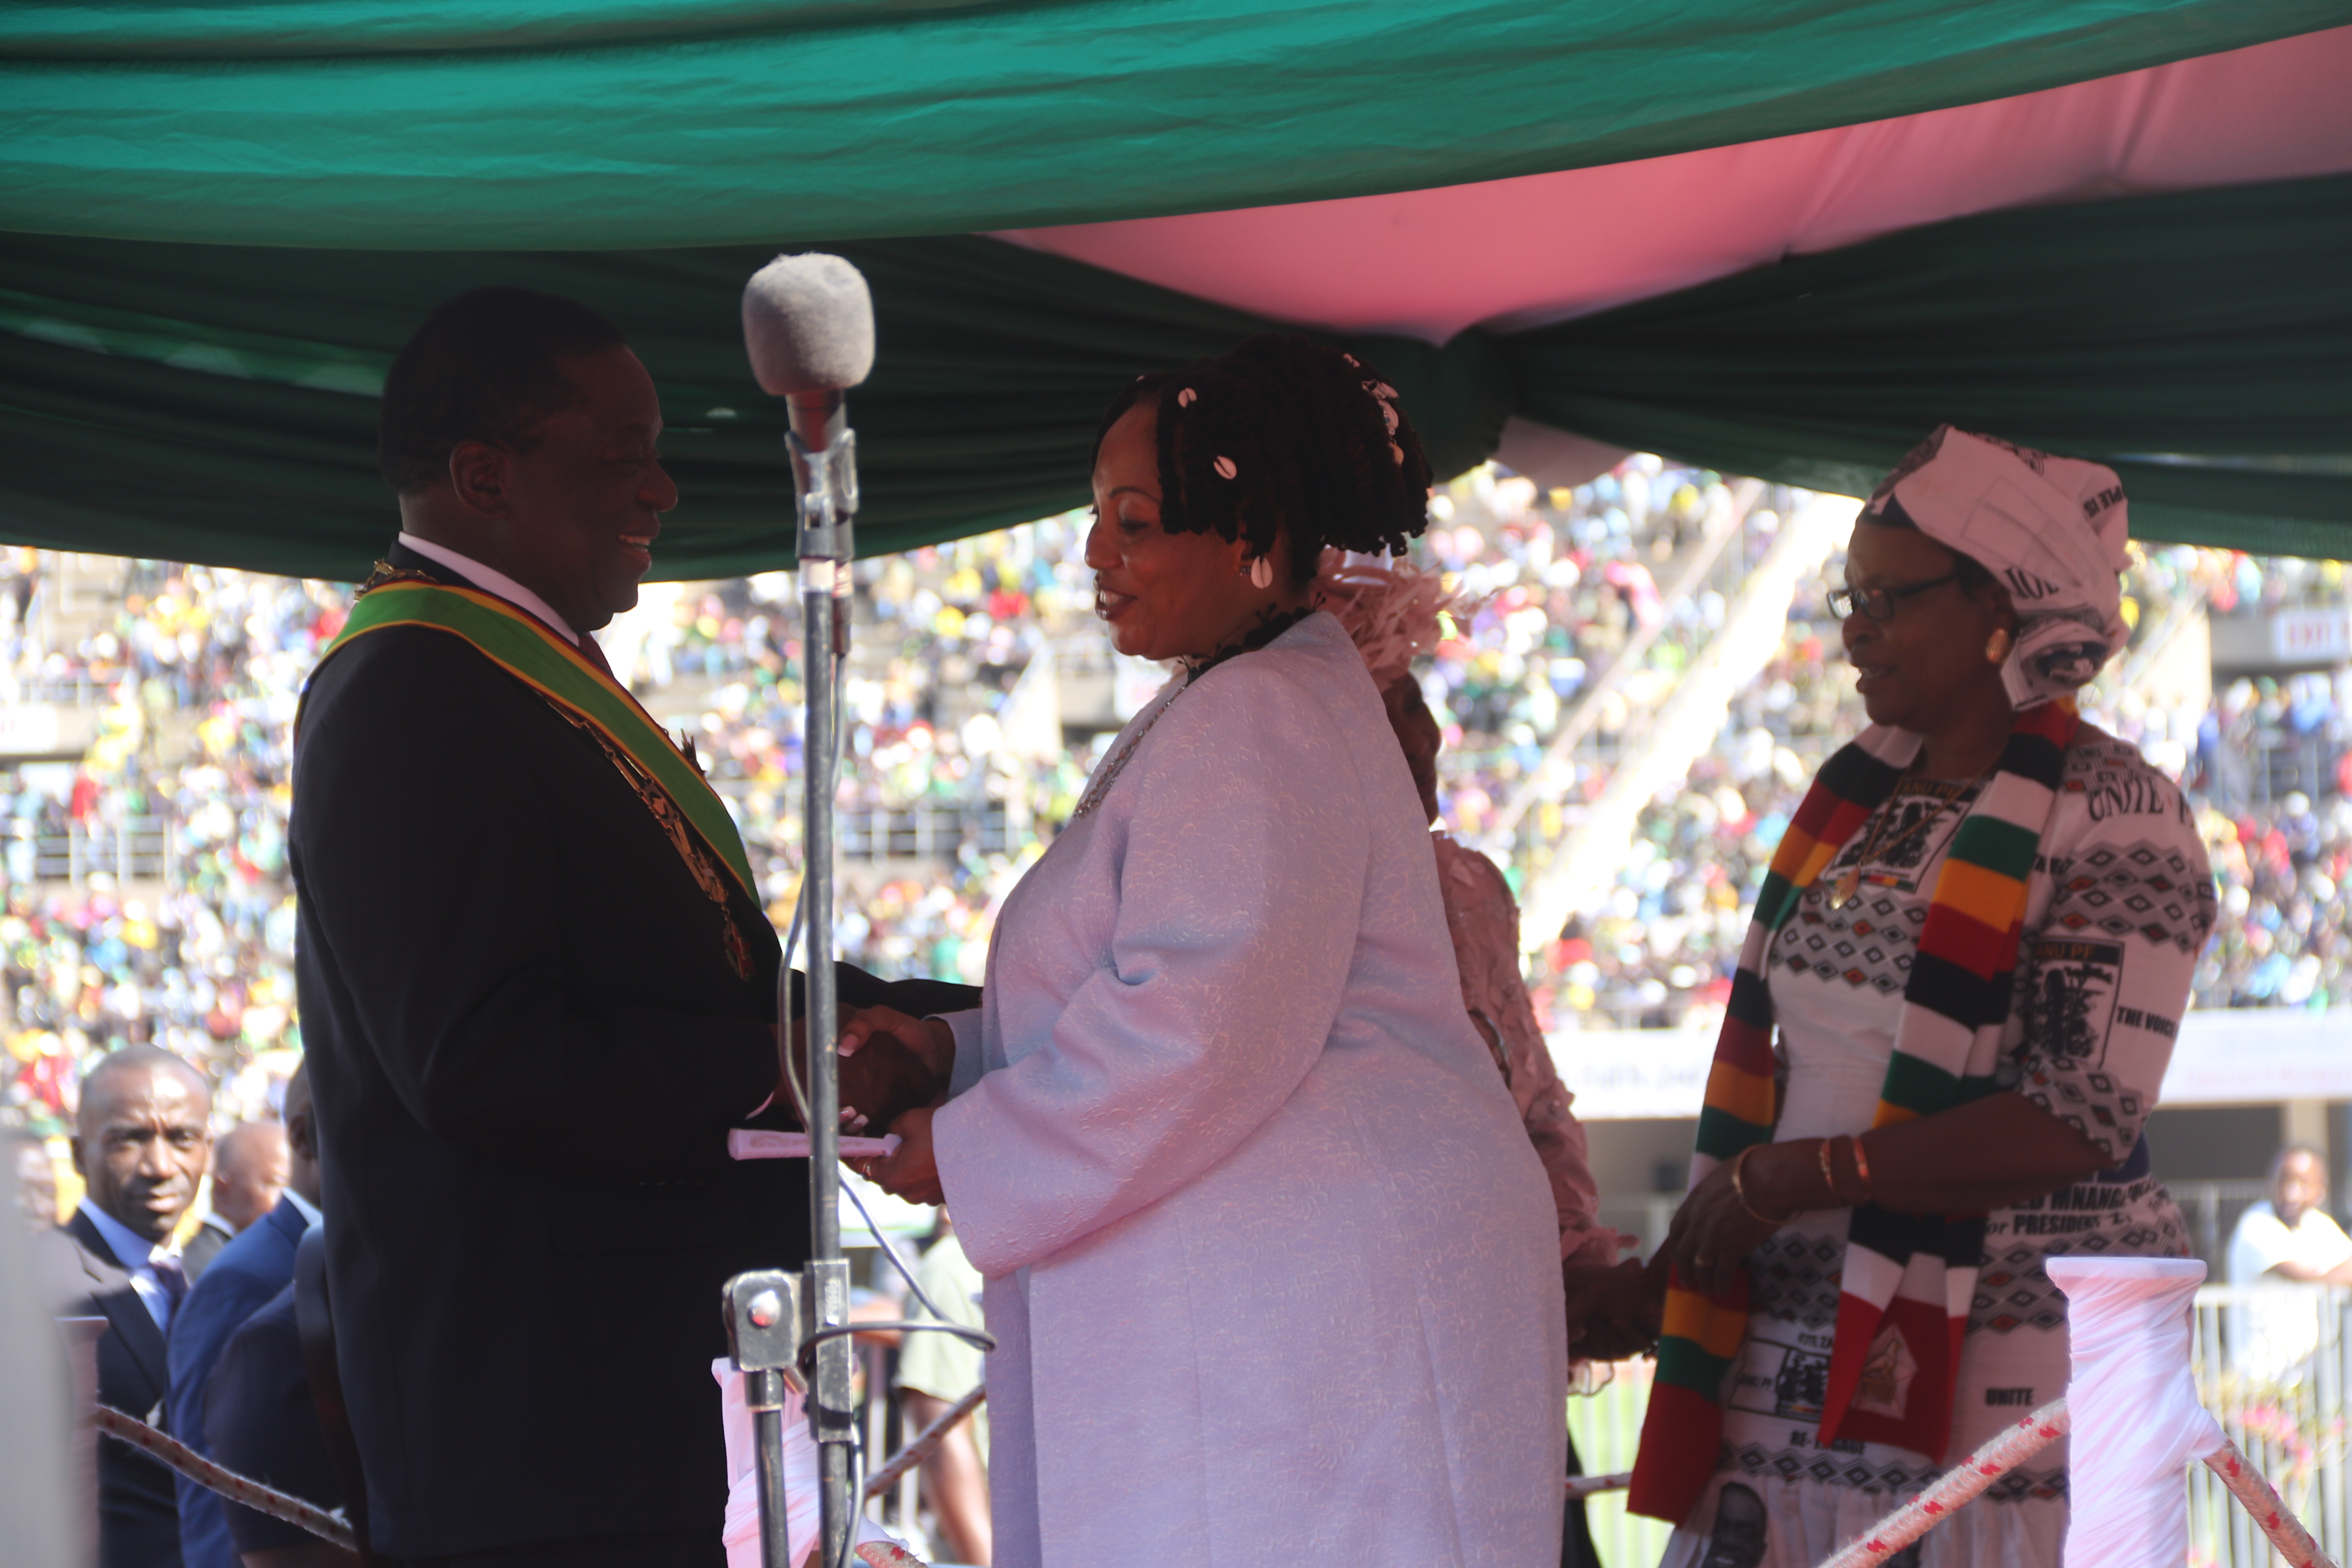 Priscilla Chigumba, the head of Zimbabwe Electoral Commission talking to President Emmerson Mnangagwa (08/26/2018) in Harare.